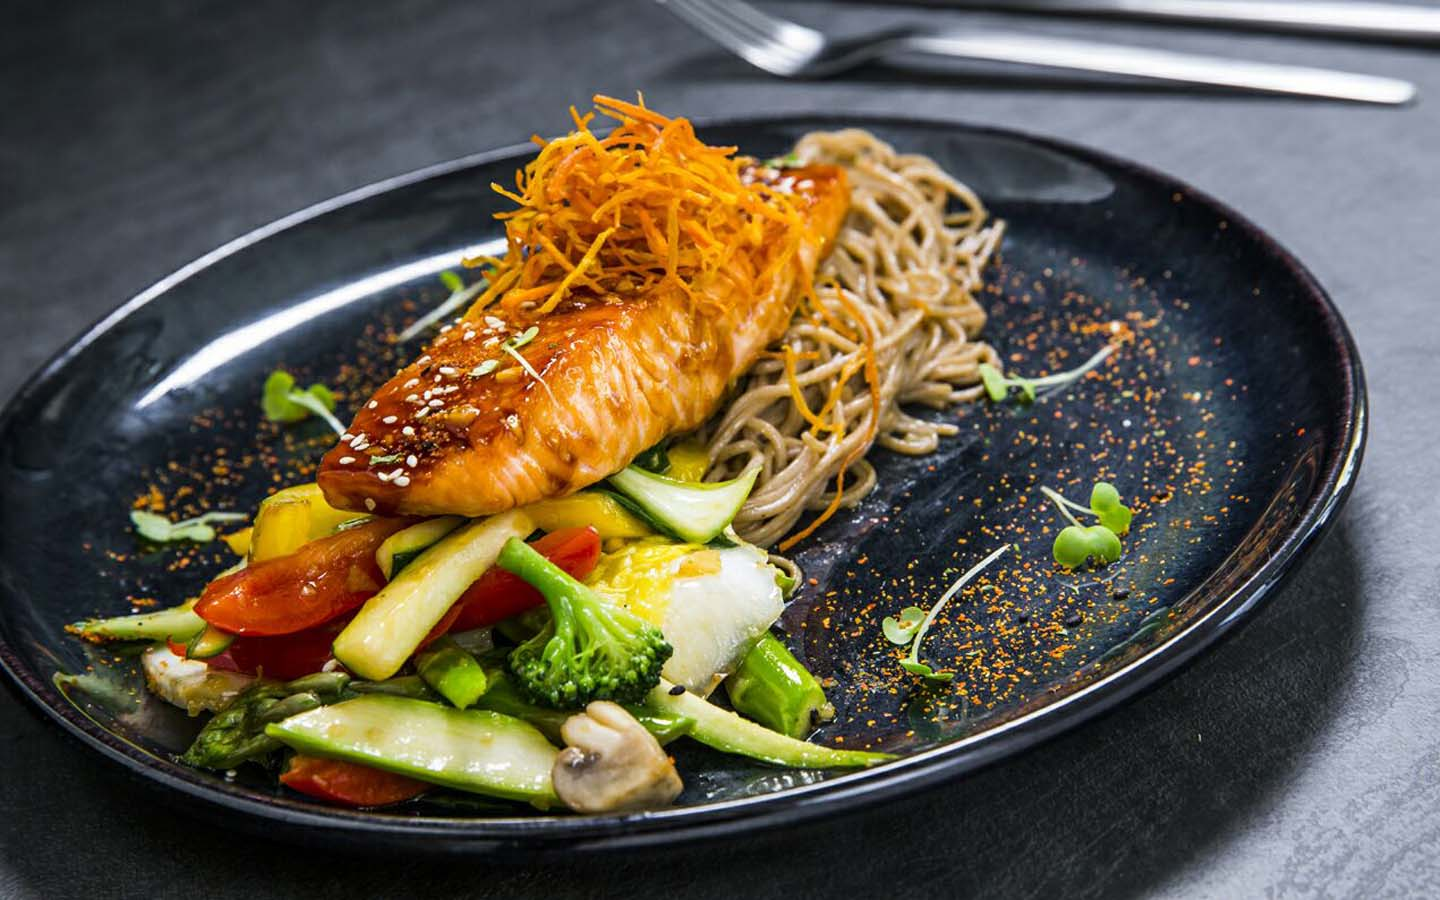 Fried fish with vegetables and noodles.